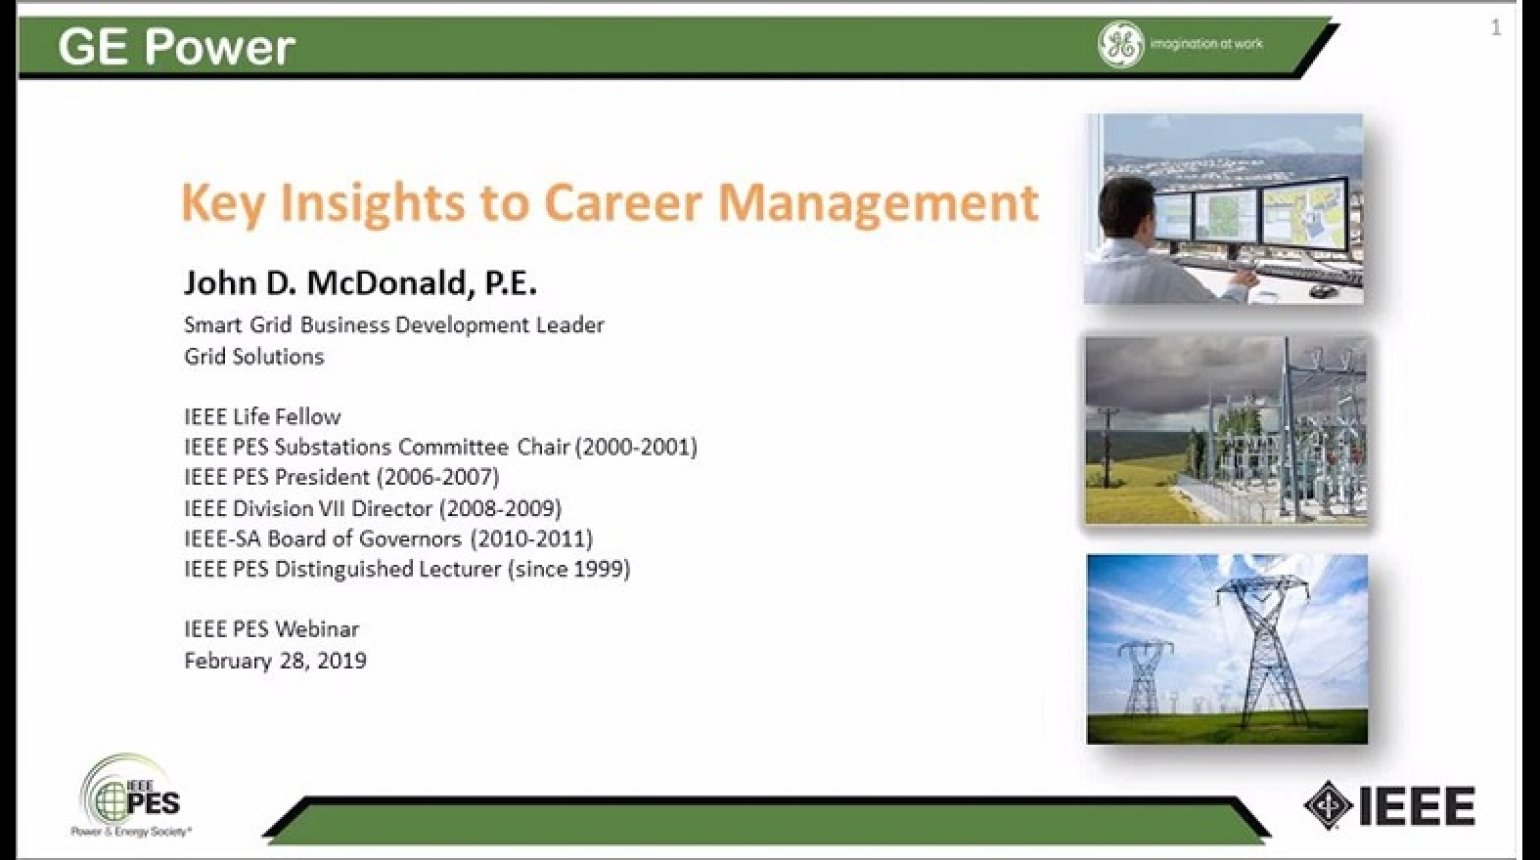 Key Insights to Career Management